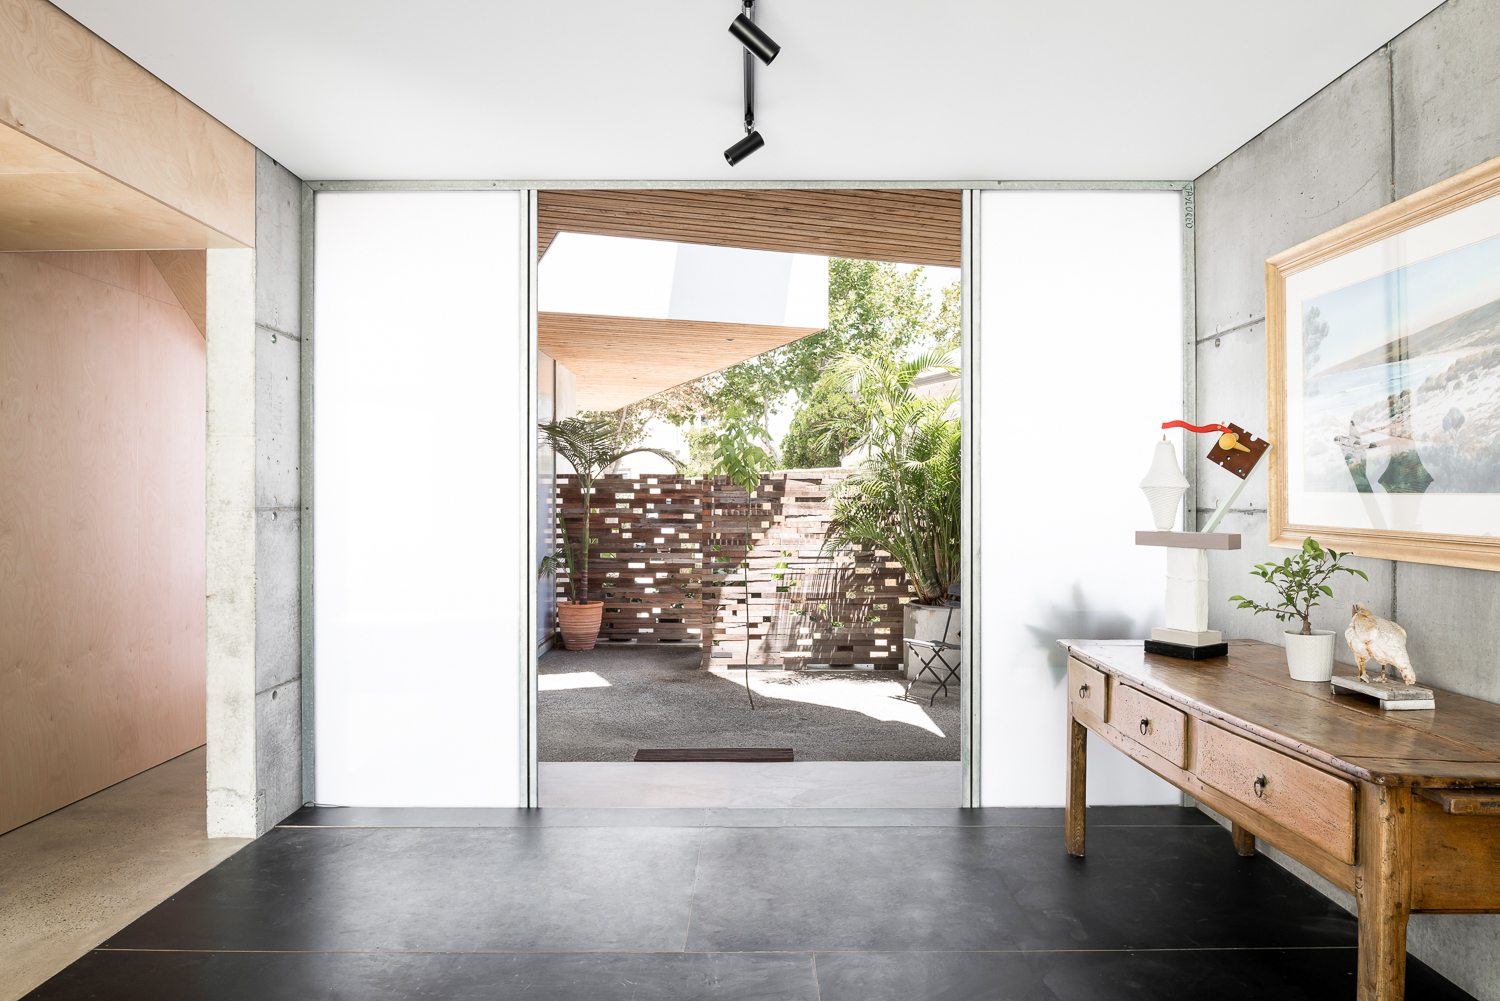 Gallery Of Silver Street House By Ehdo Architecture Local Design And Interiors South Fremantle, Wa Image 11